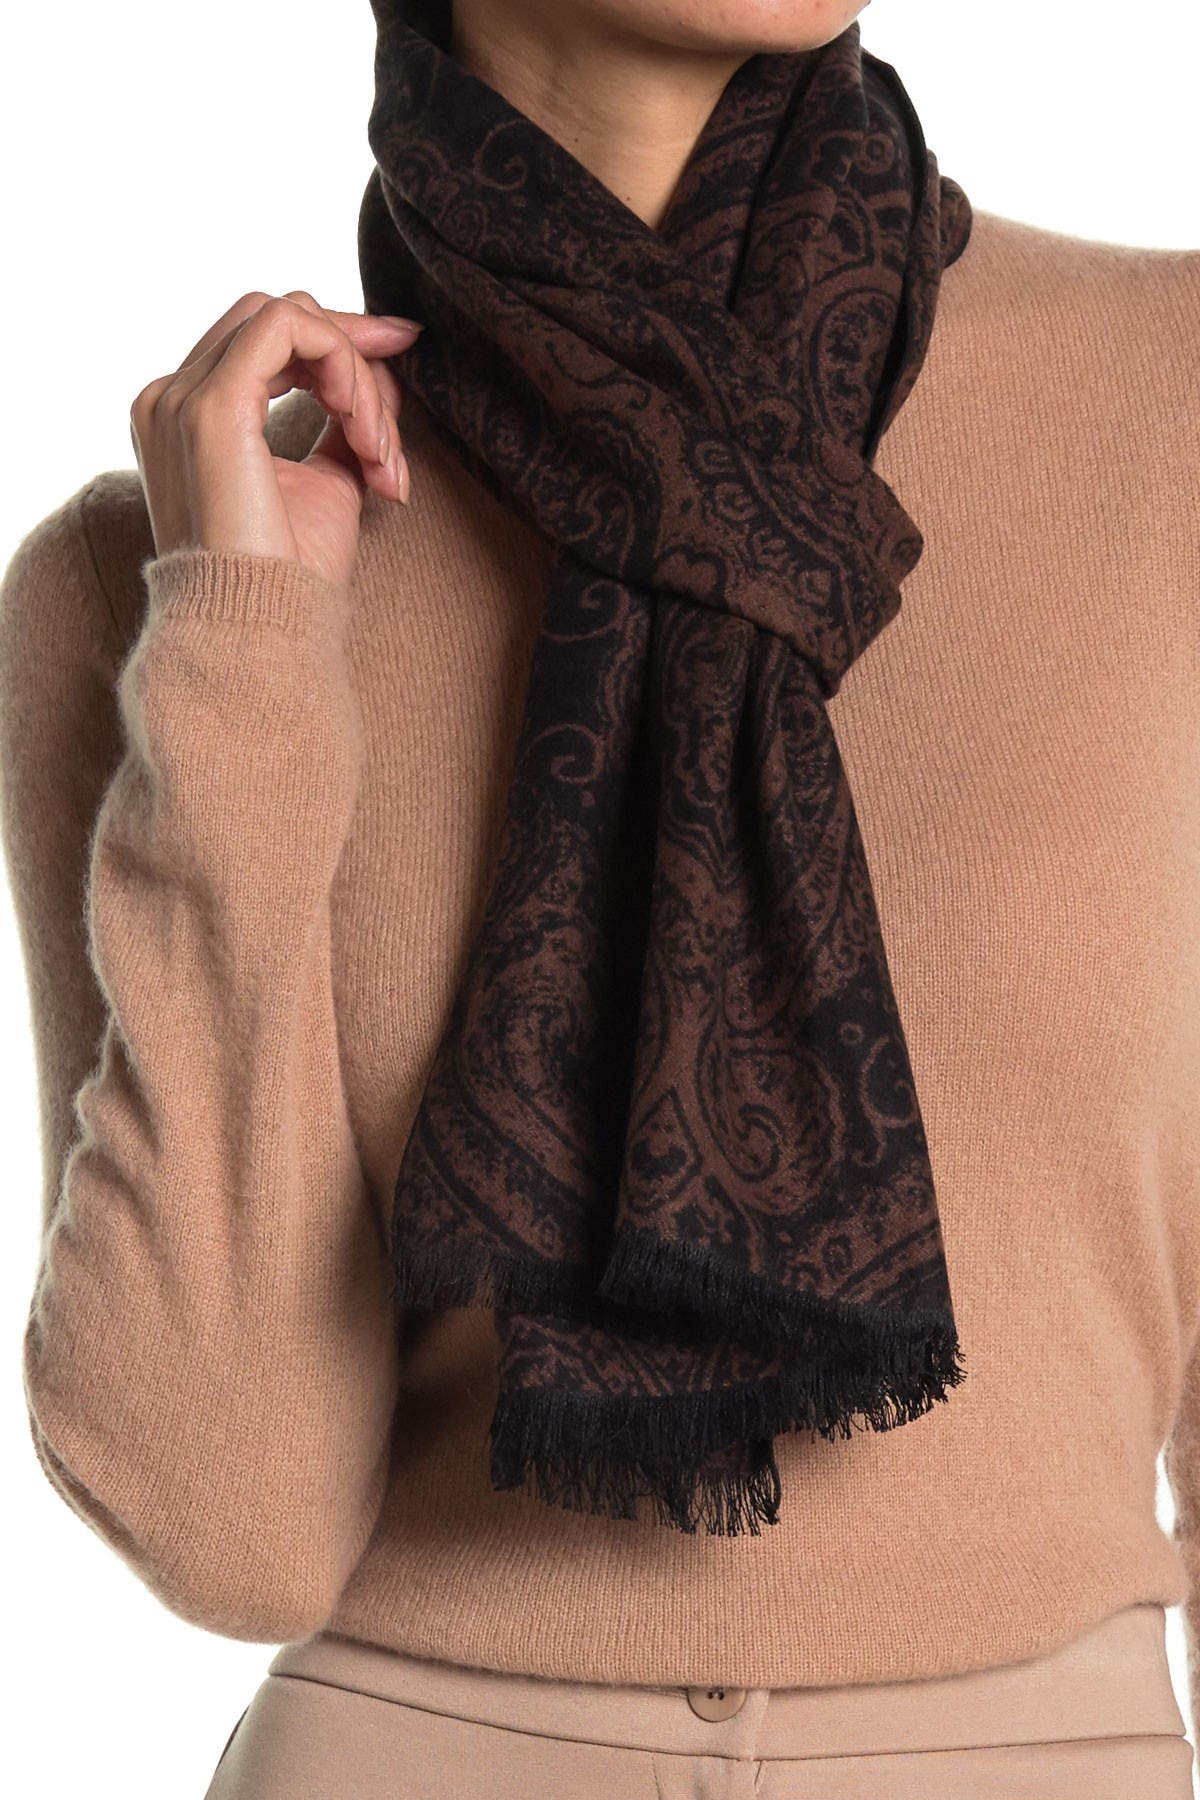 Image of Chelsey Imports Tapestry Paisley Silk Scarf